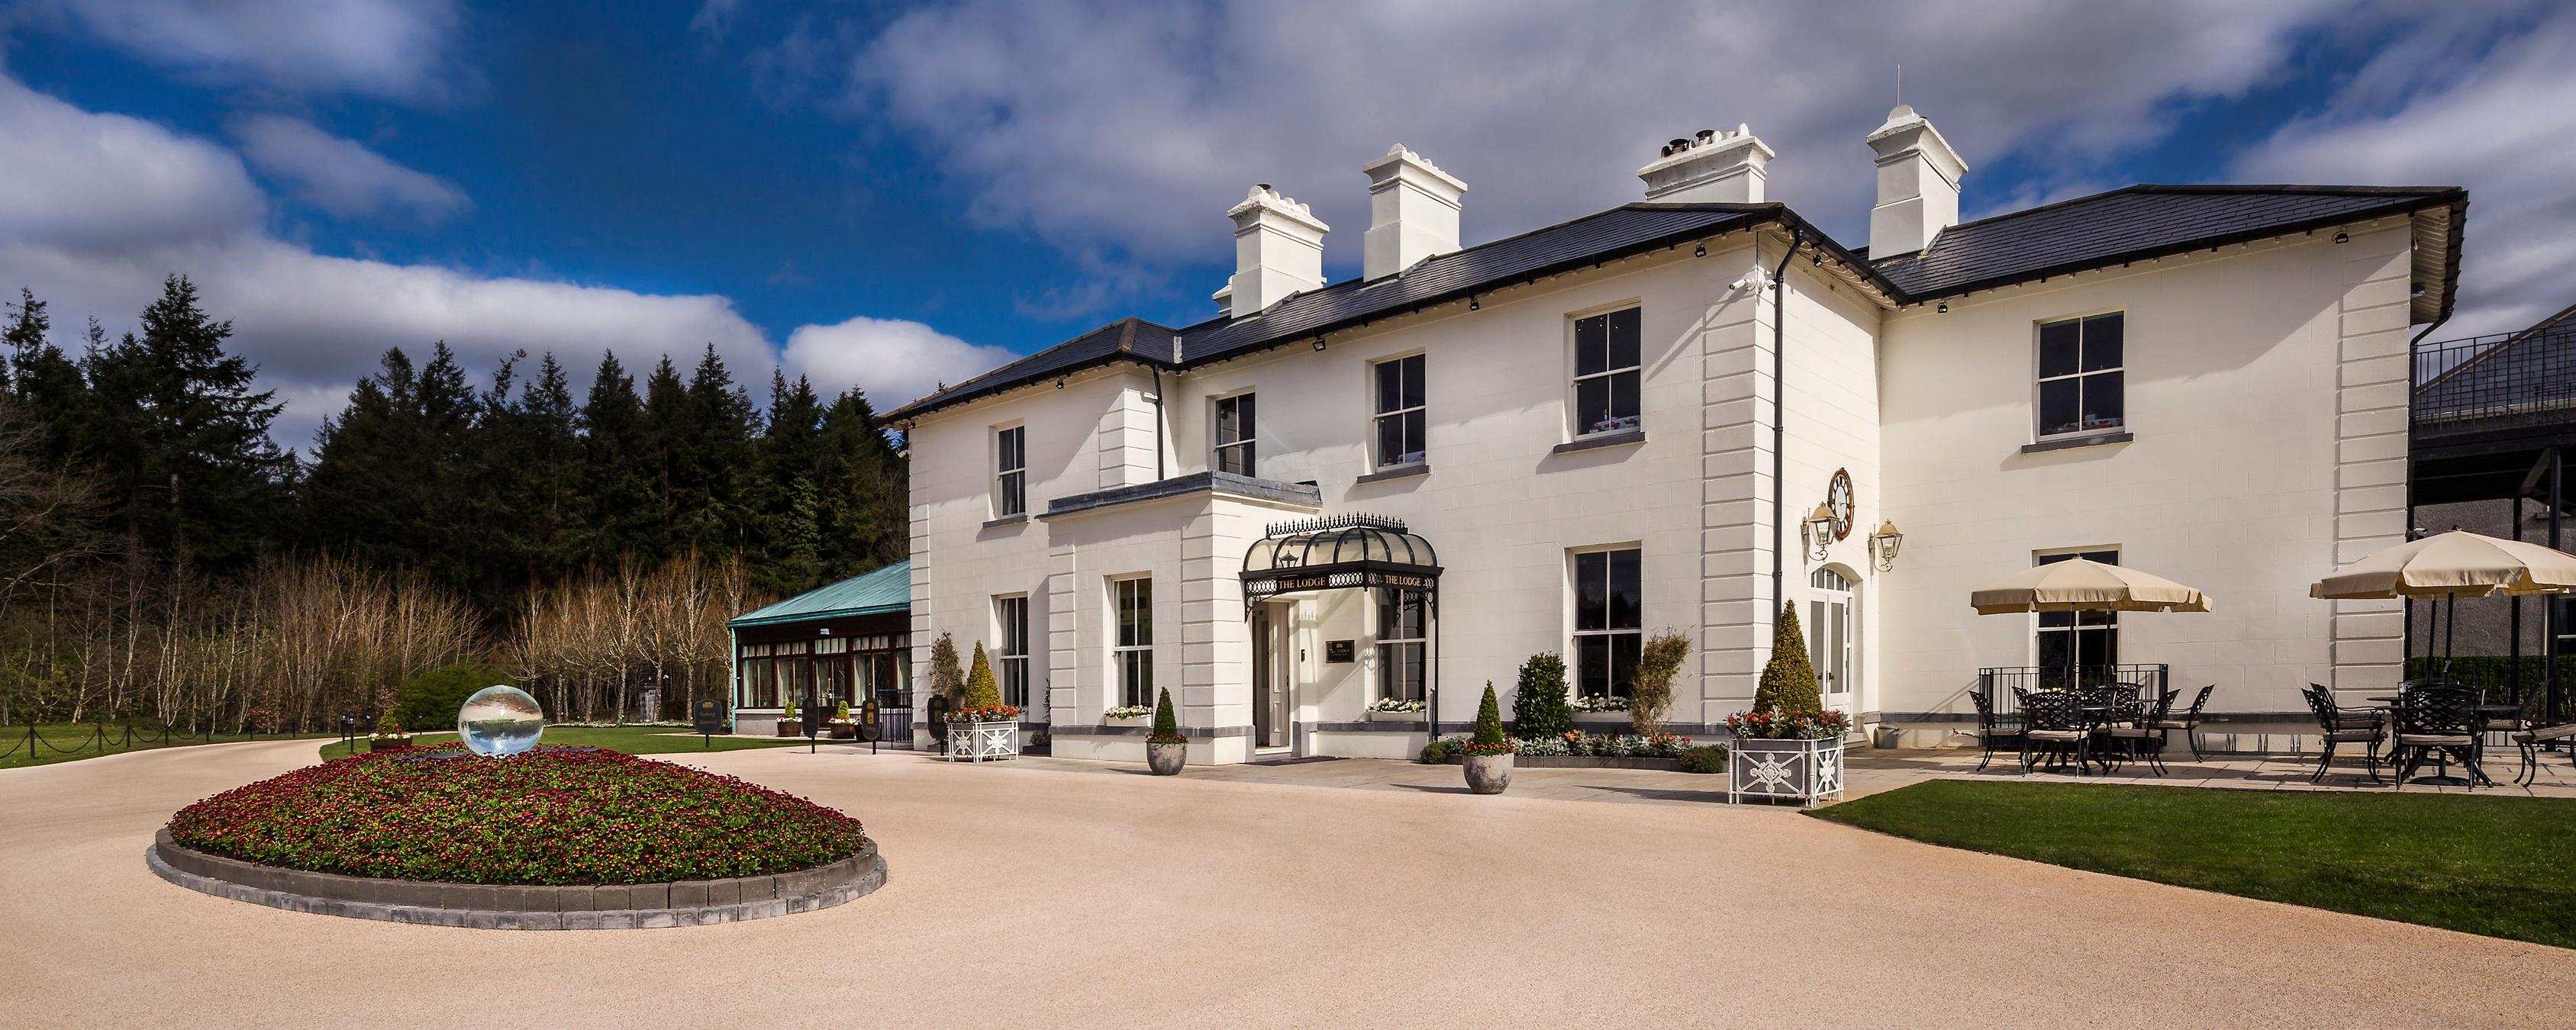 Management/Administration - The Lodge at Ashford Castle Brand Cover